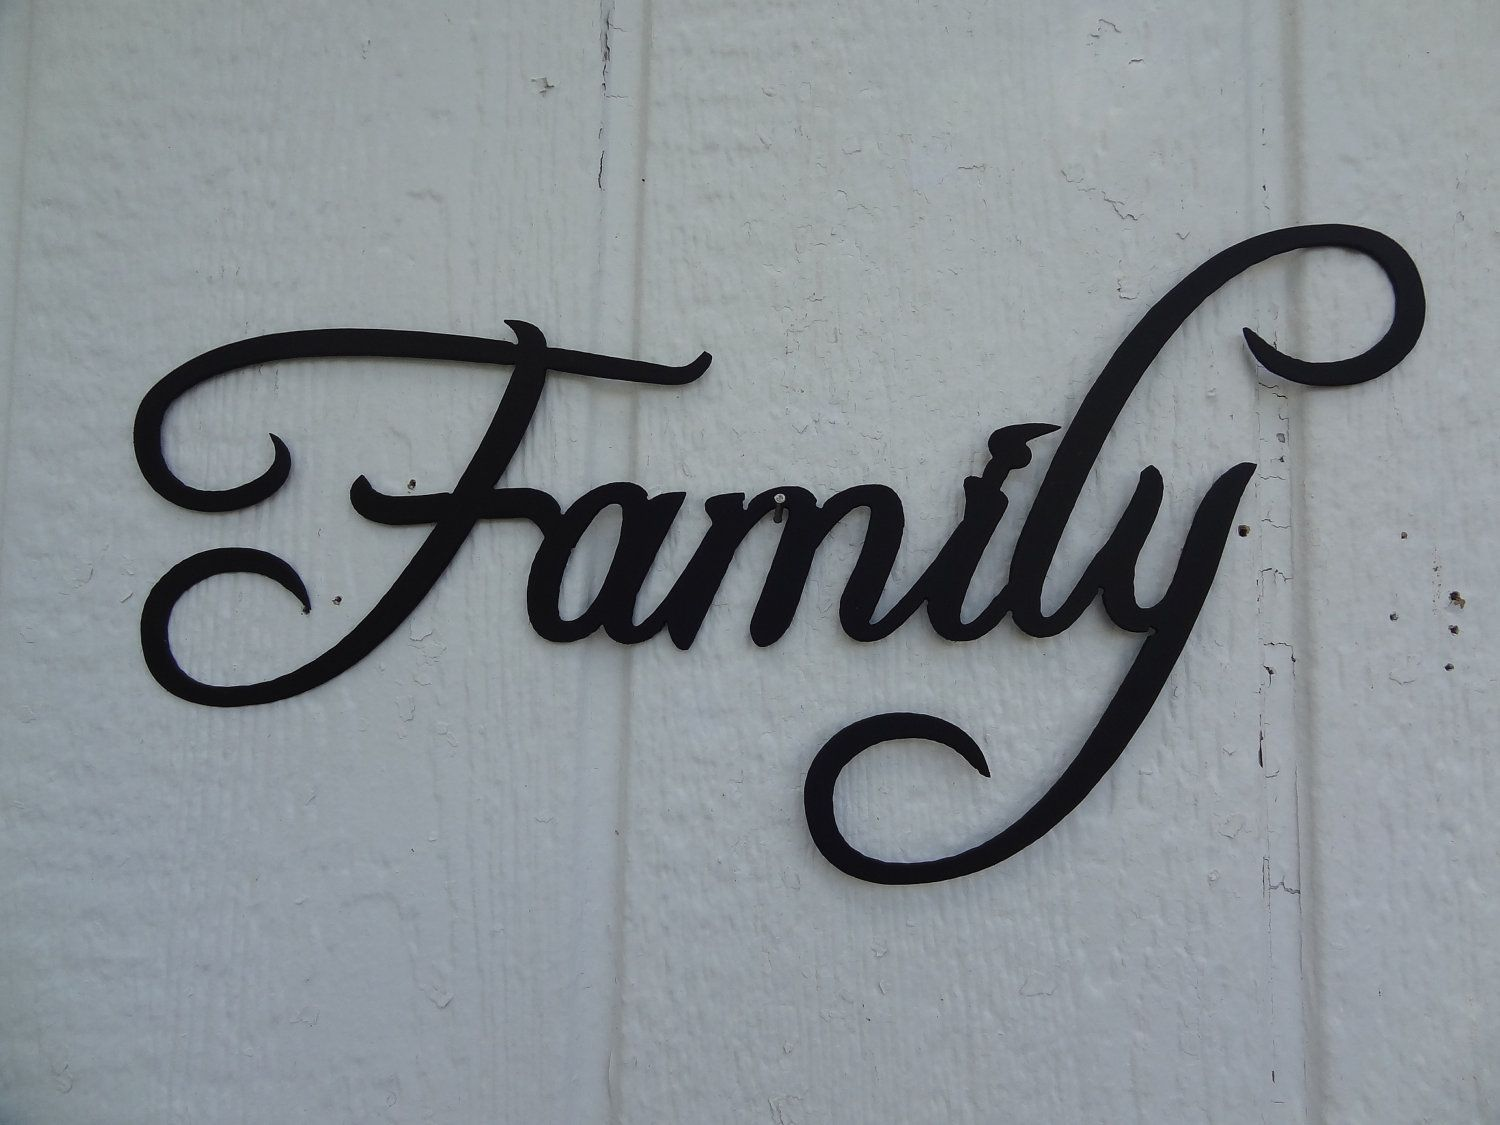 Family word decorative metal wall art home decor 1599 via etsy family word decorative metal wall art home decor 1599 via etsy amipublicfo Gallery